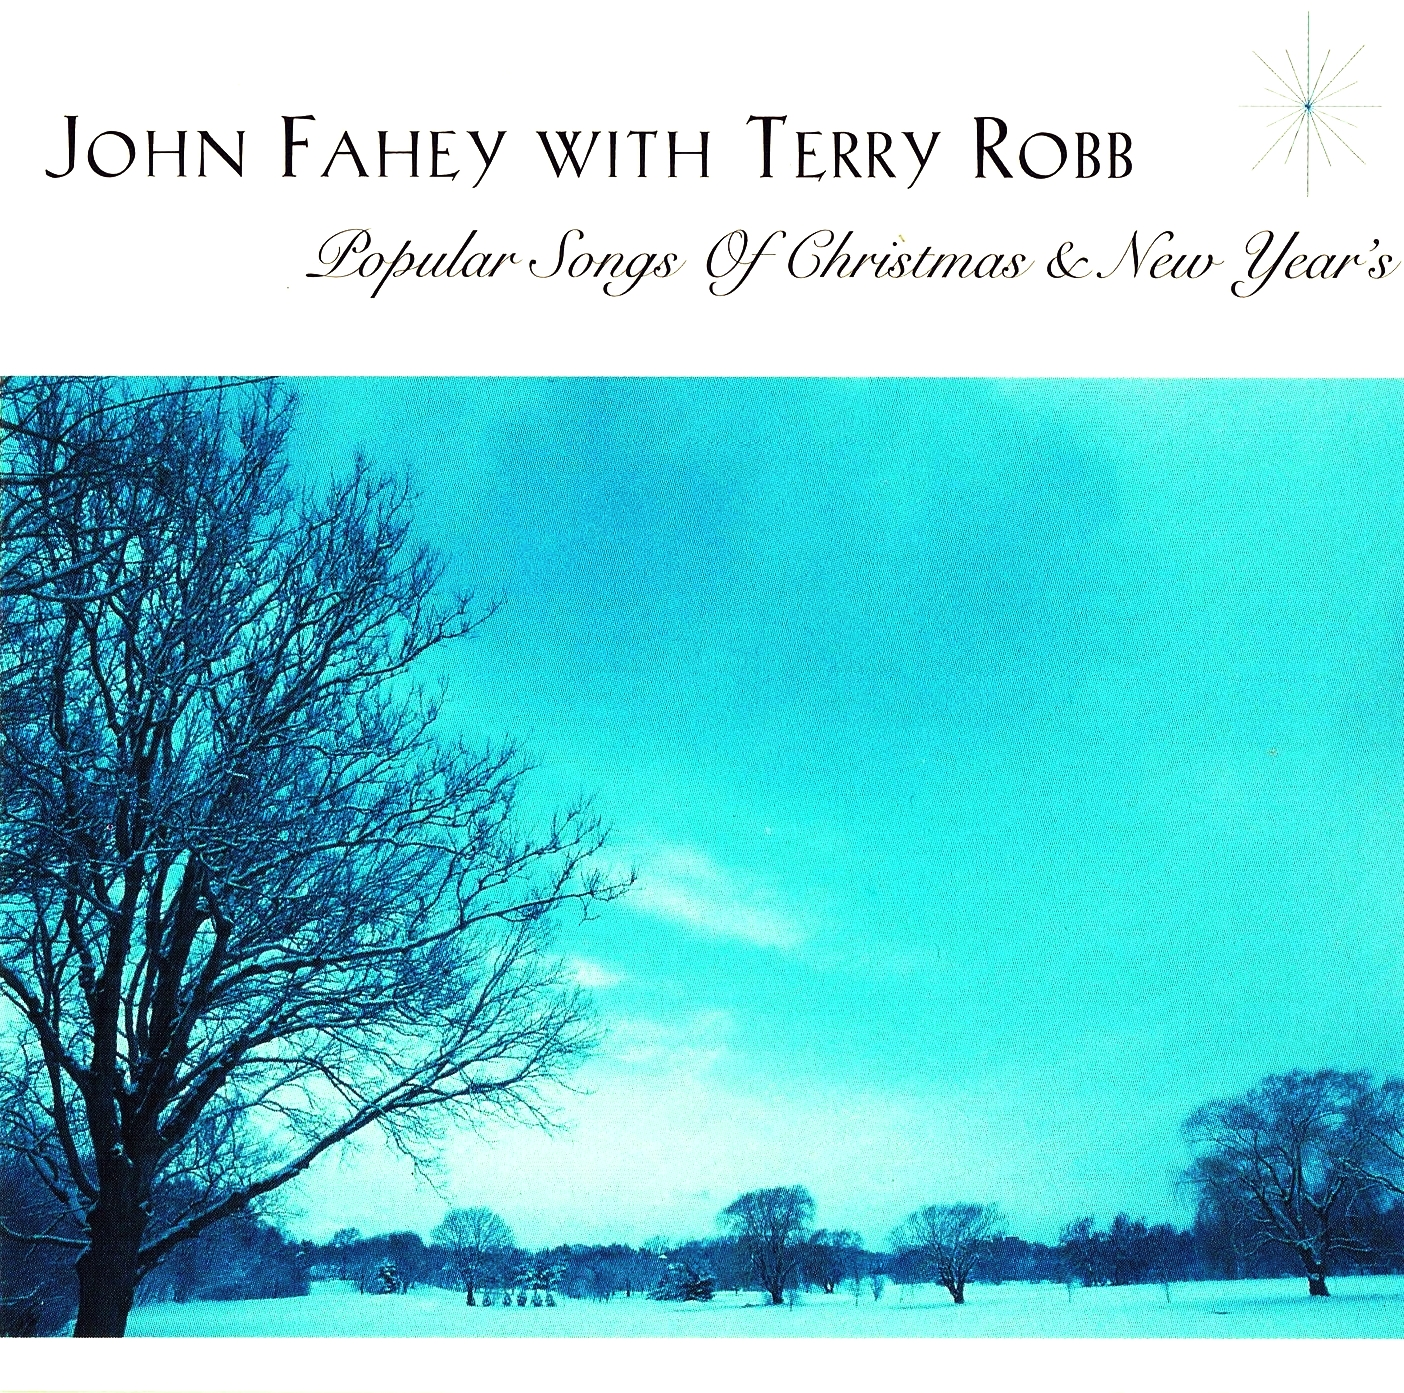 John Fahey, Popular Songs of Christmas & New Year's